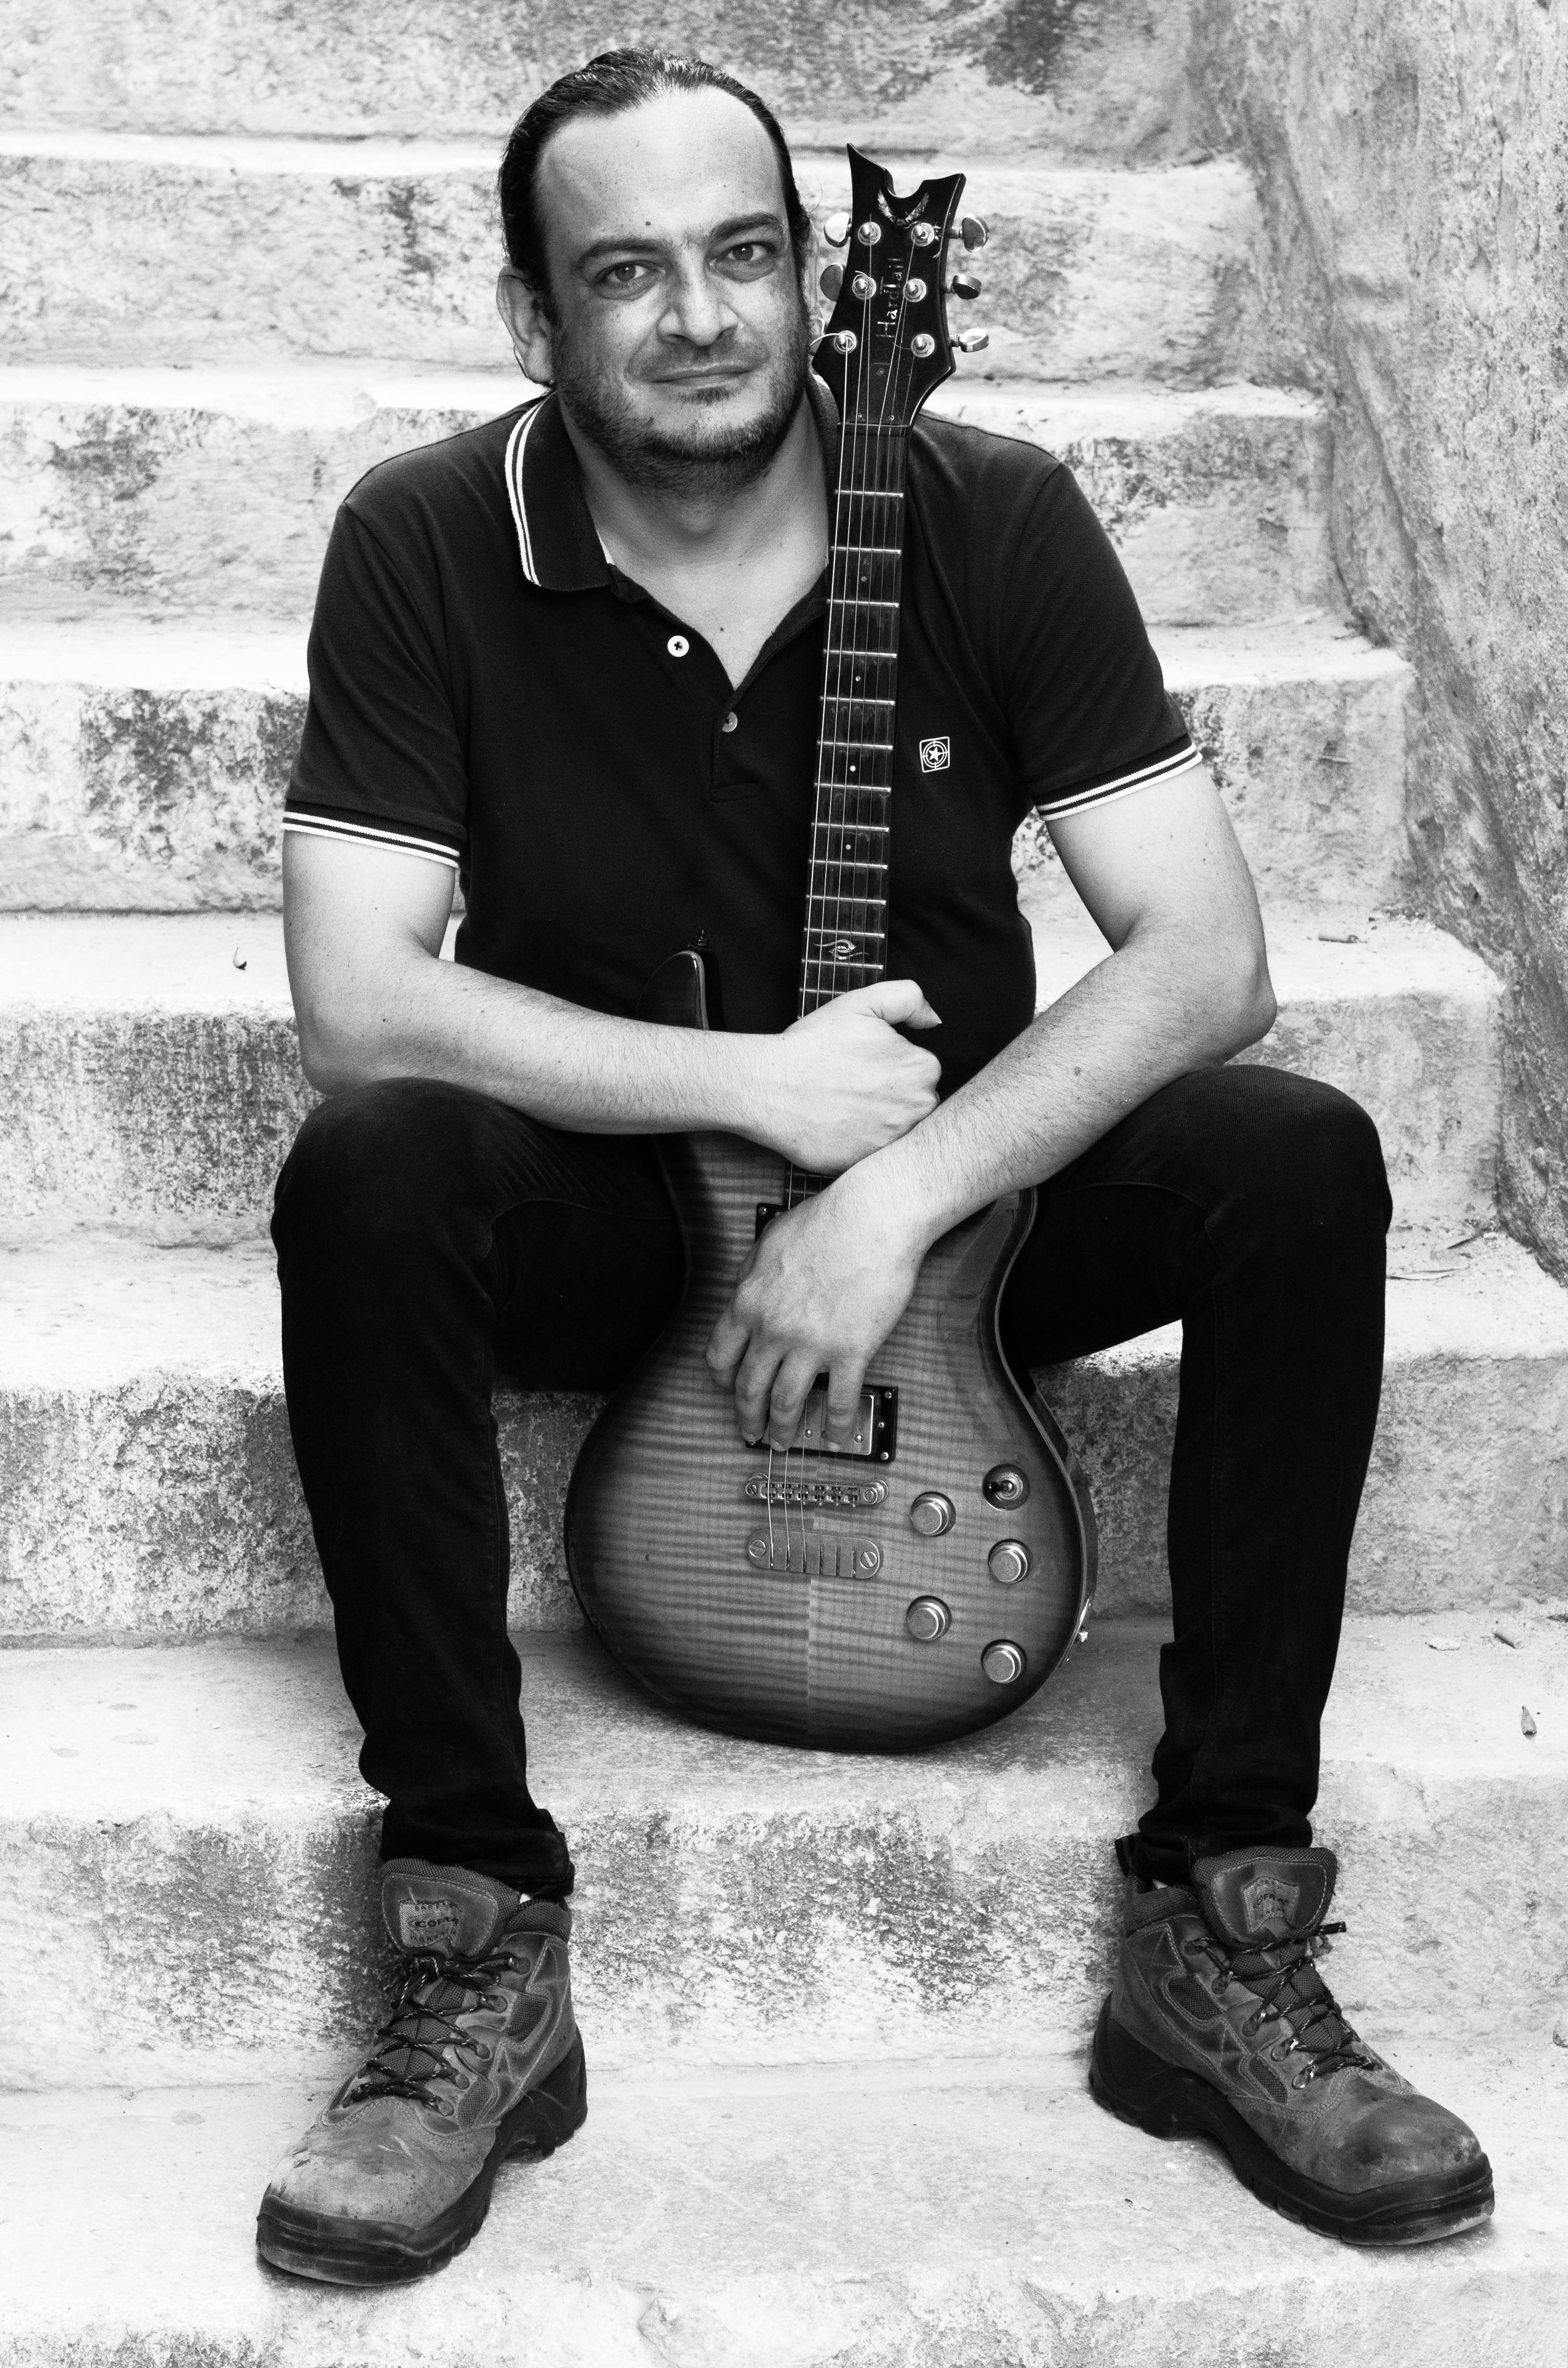 Robert learn guitar malta How to Use Rests Creatively When Improvising